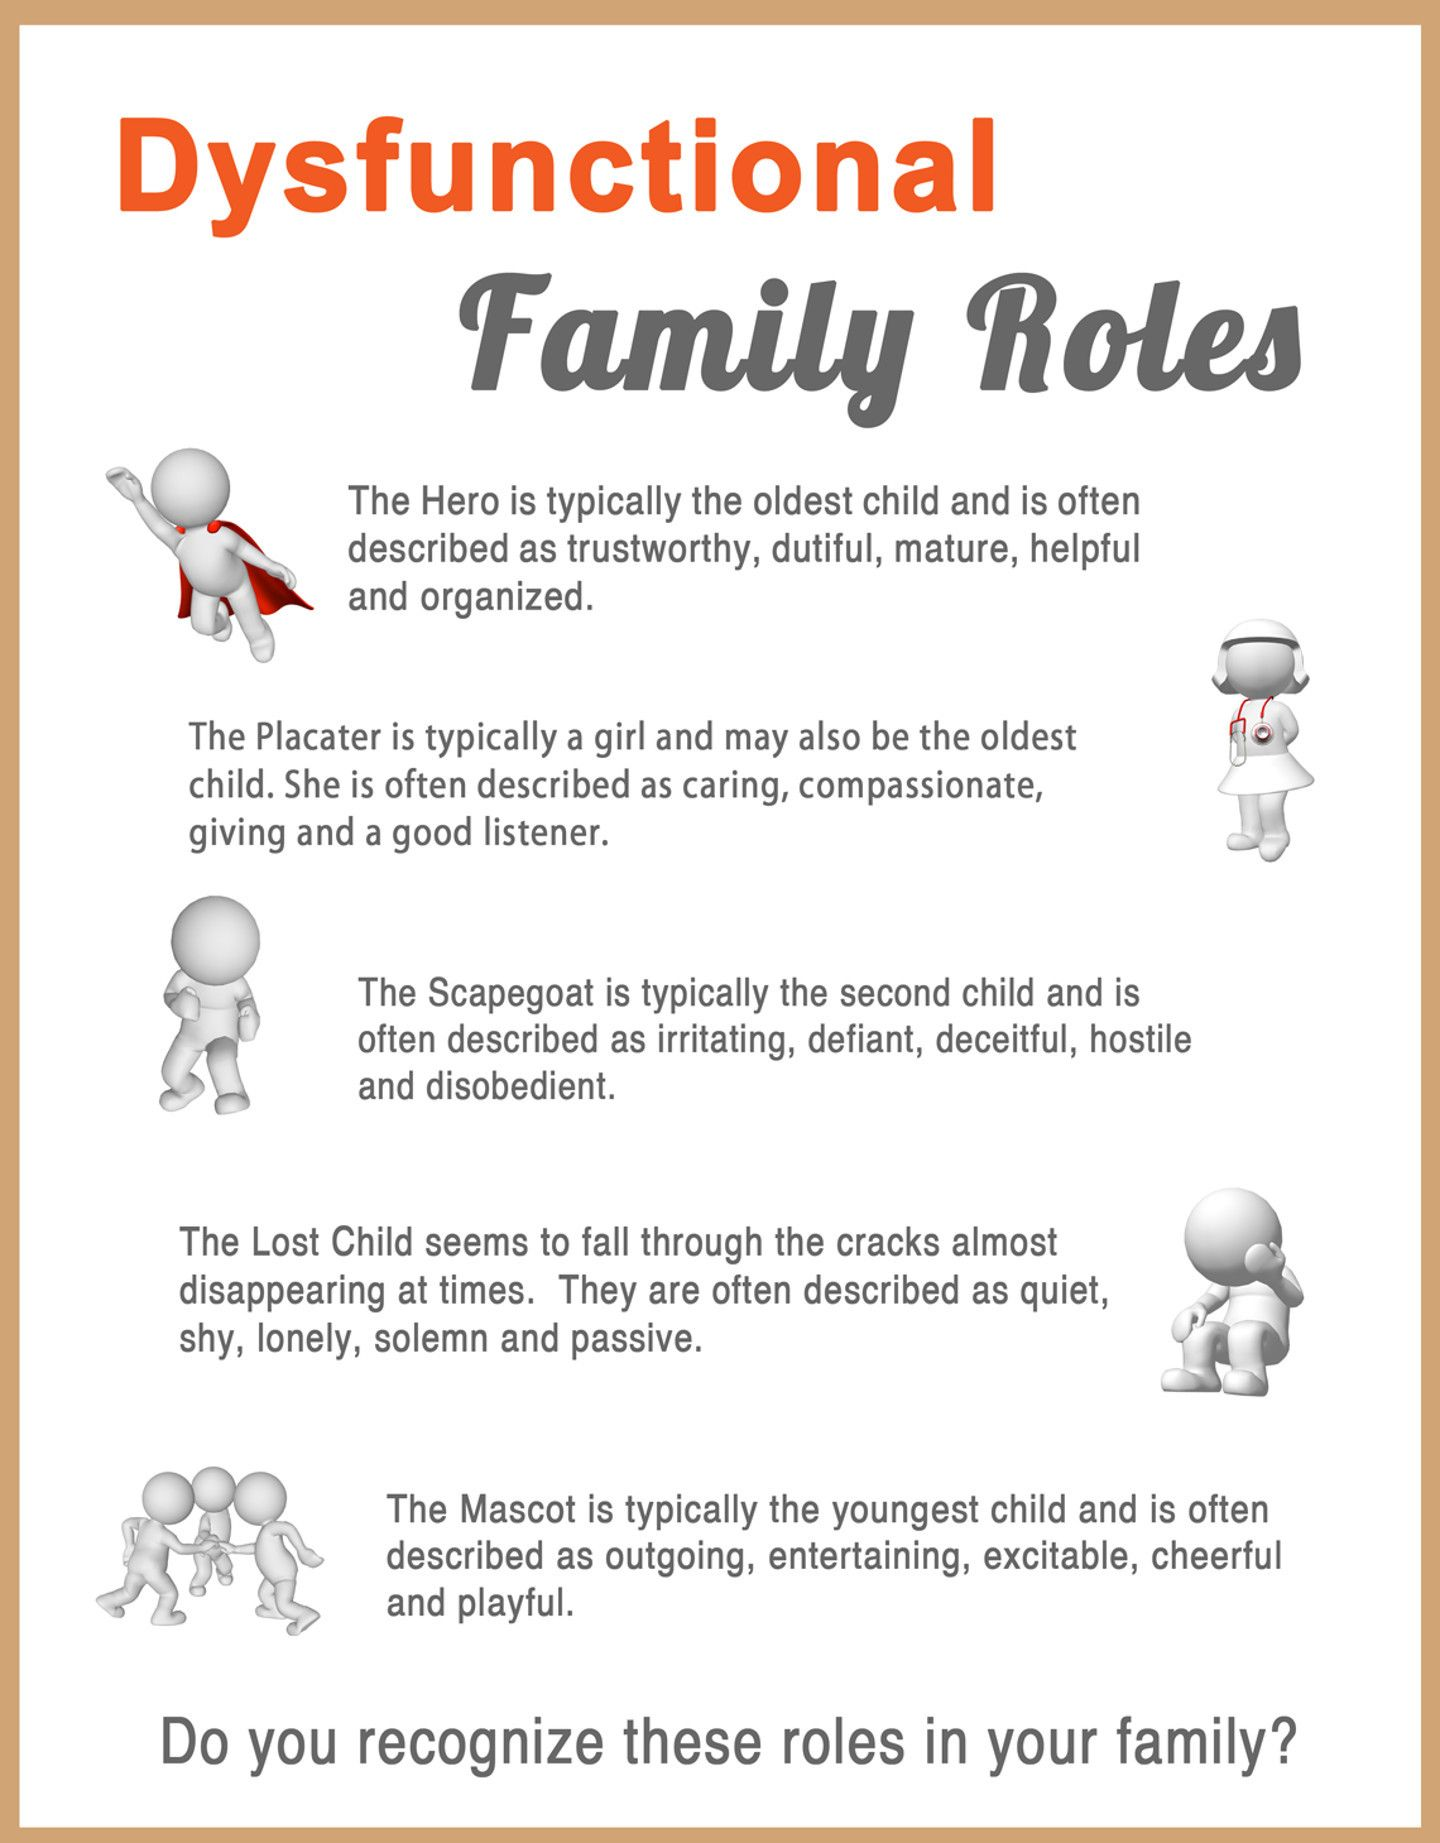 RESPONSIBLE Parenting Styles Worksheets – Family Roles in Addiction Worksheets